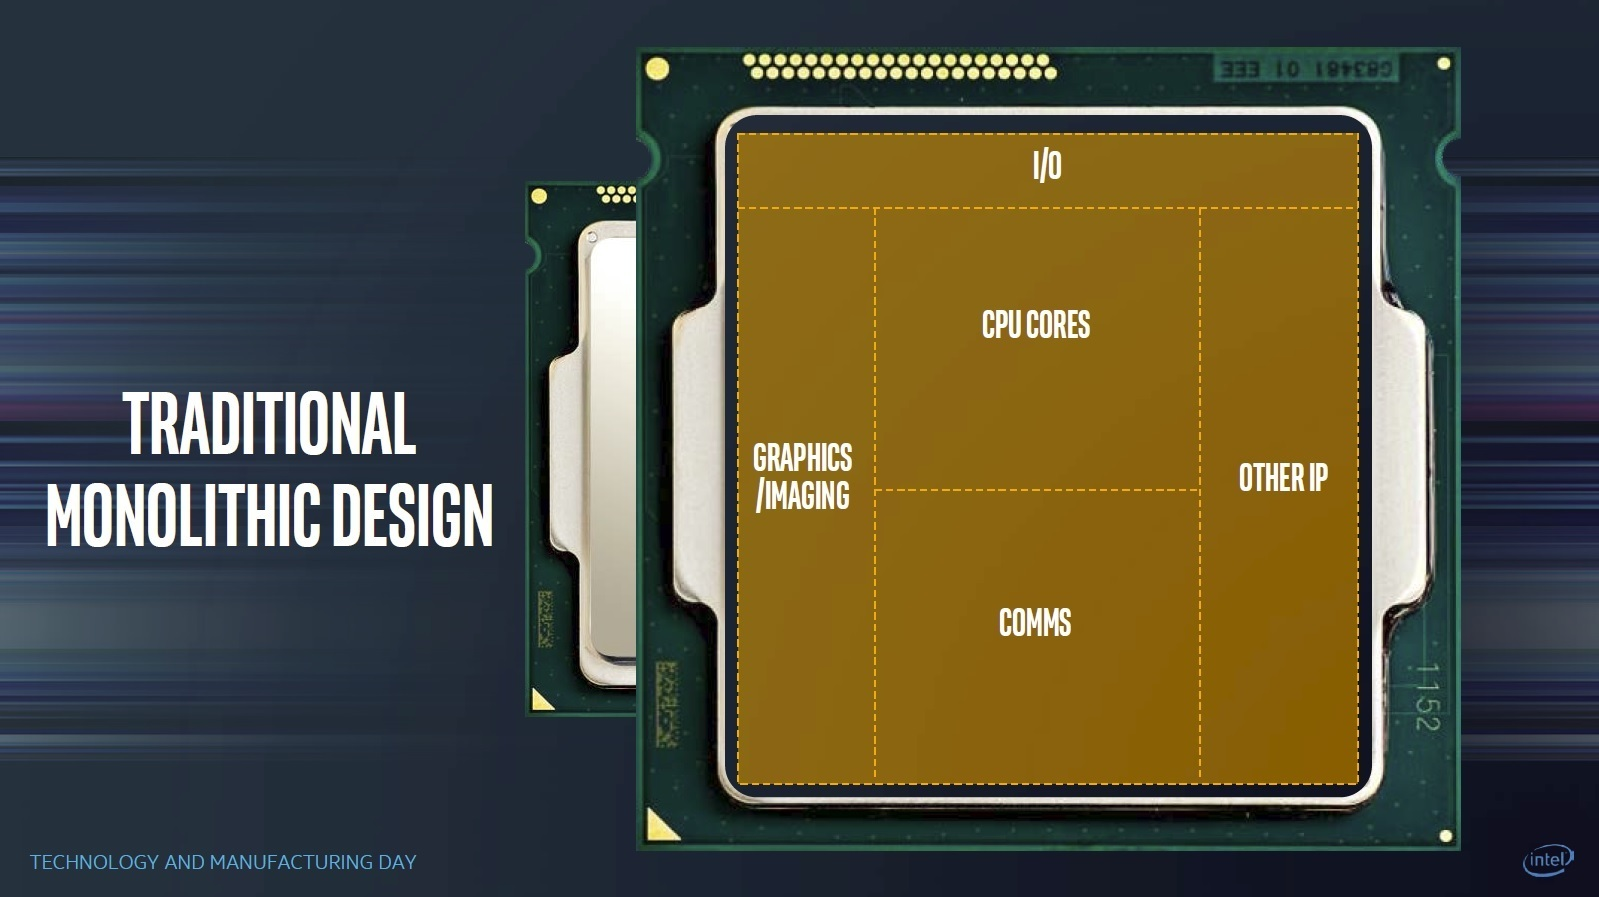 Intel discusses EMIB technology - Multi-die CPUs incoming?